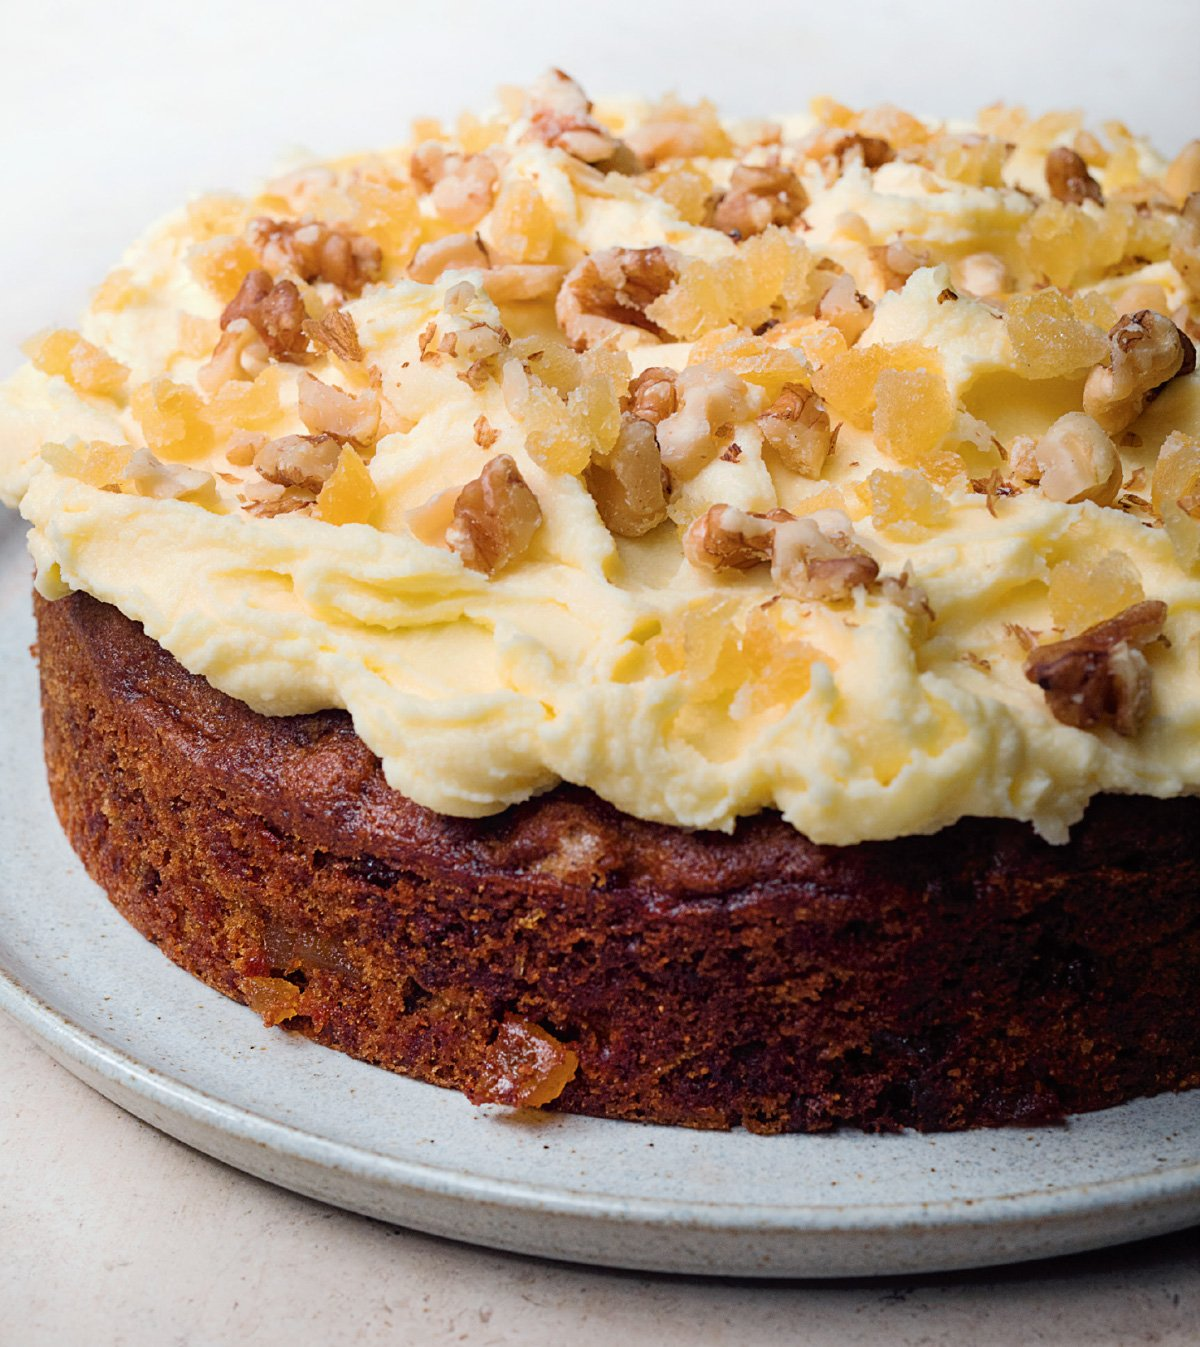 Ginger and Walnut Carrot Cake